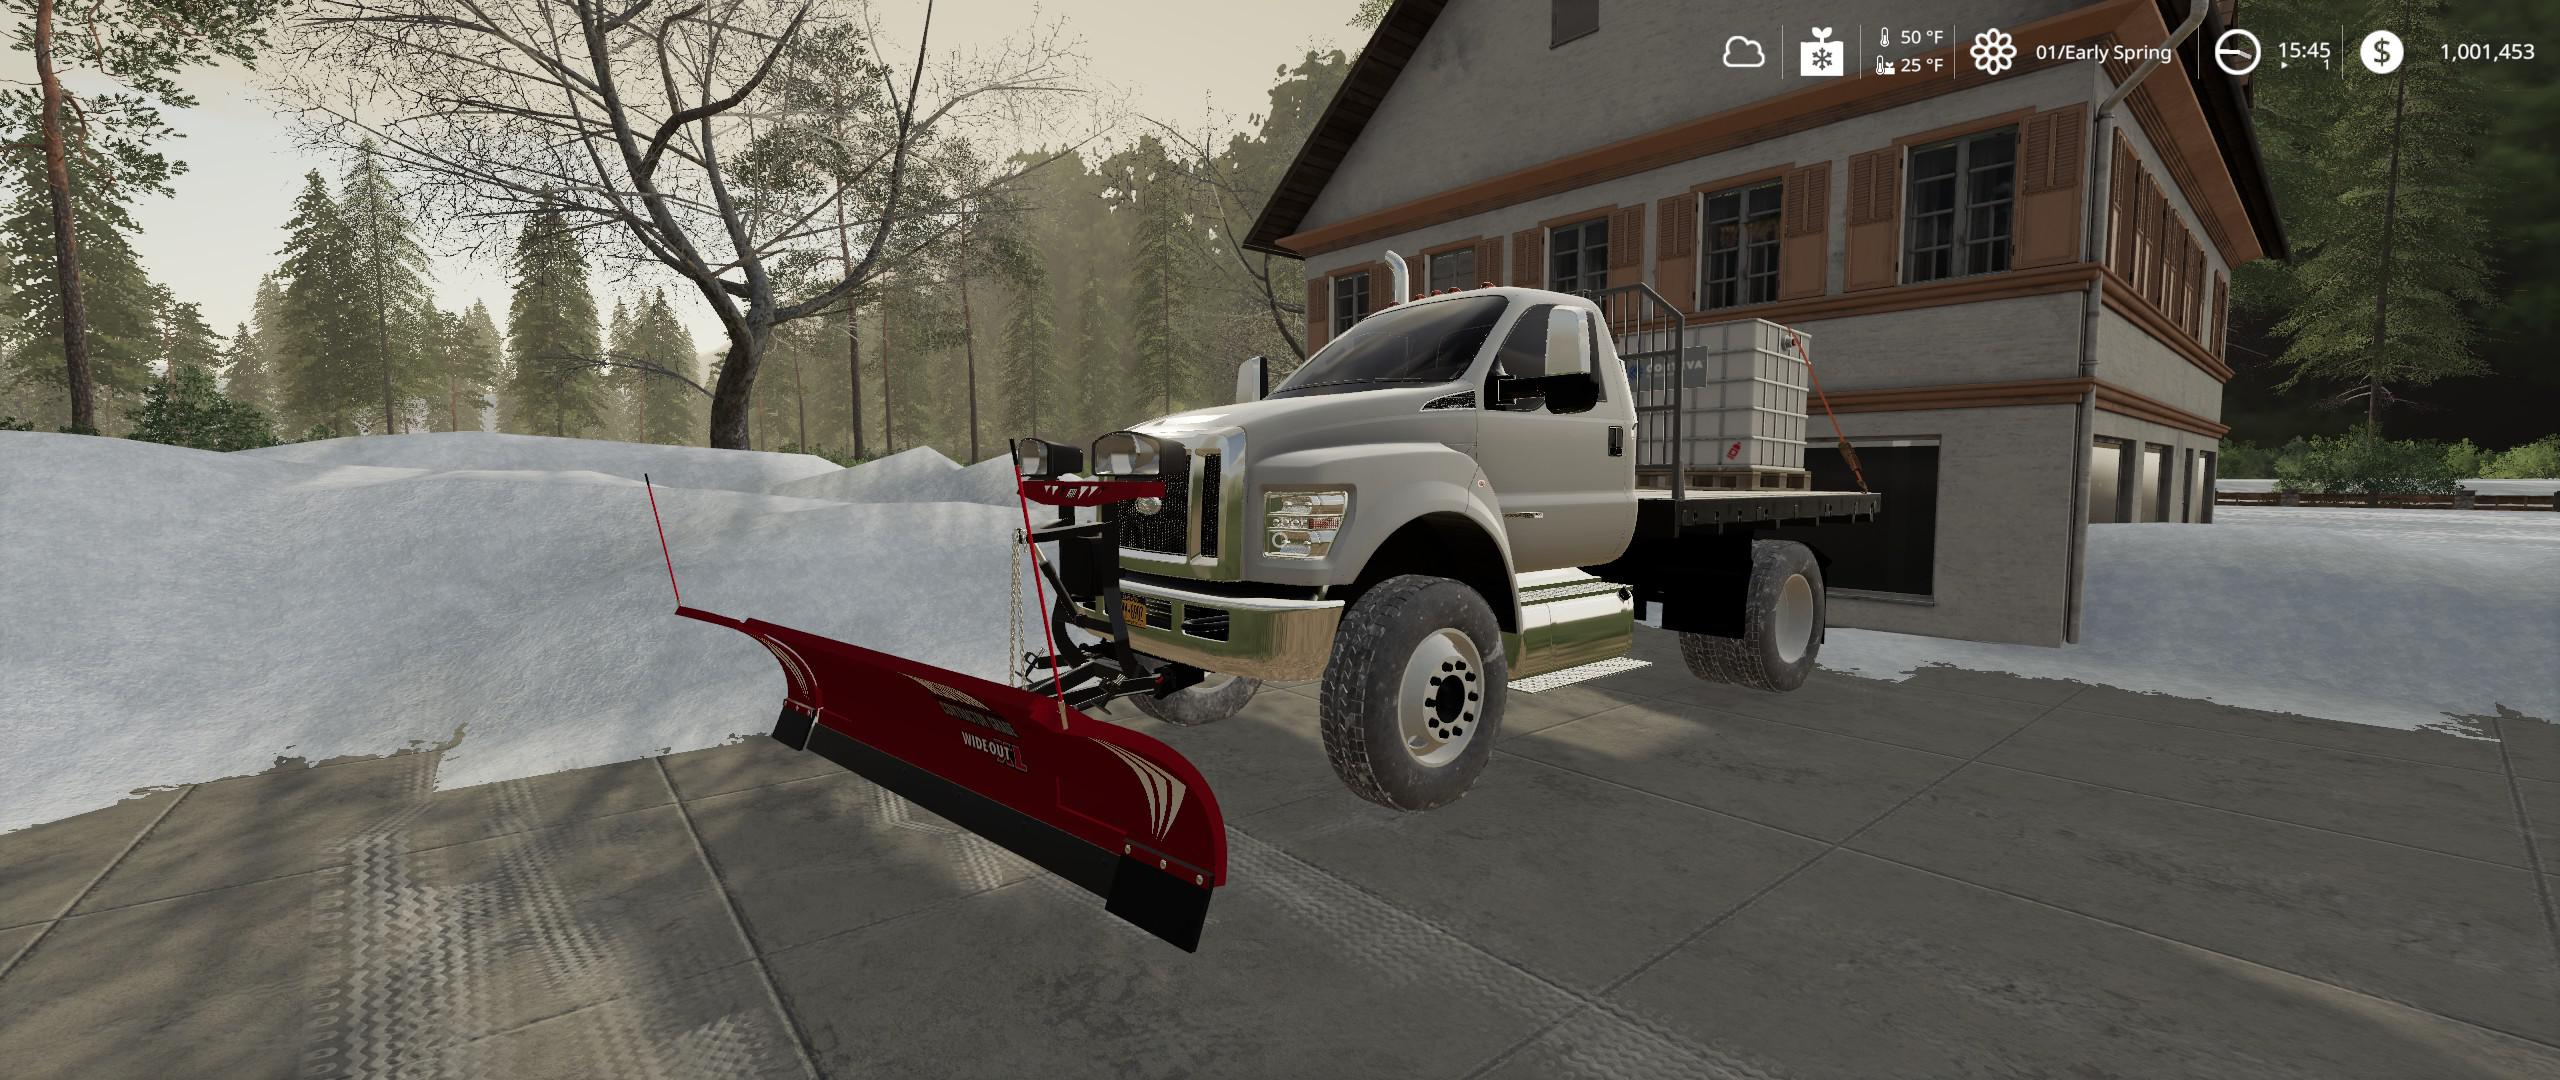 FS19 - Ford F750 Flatbed Plow Truck V1.0